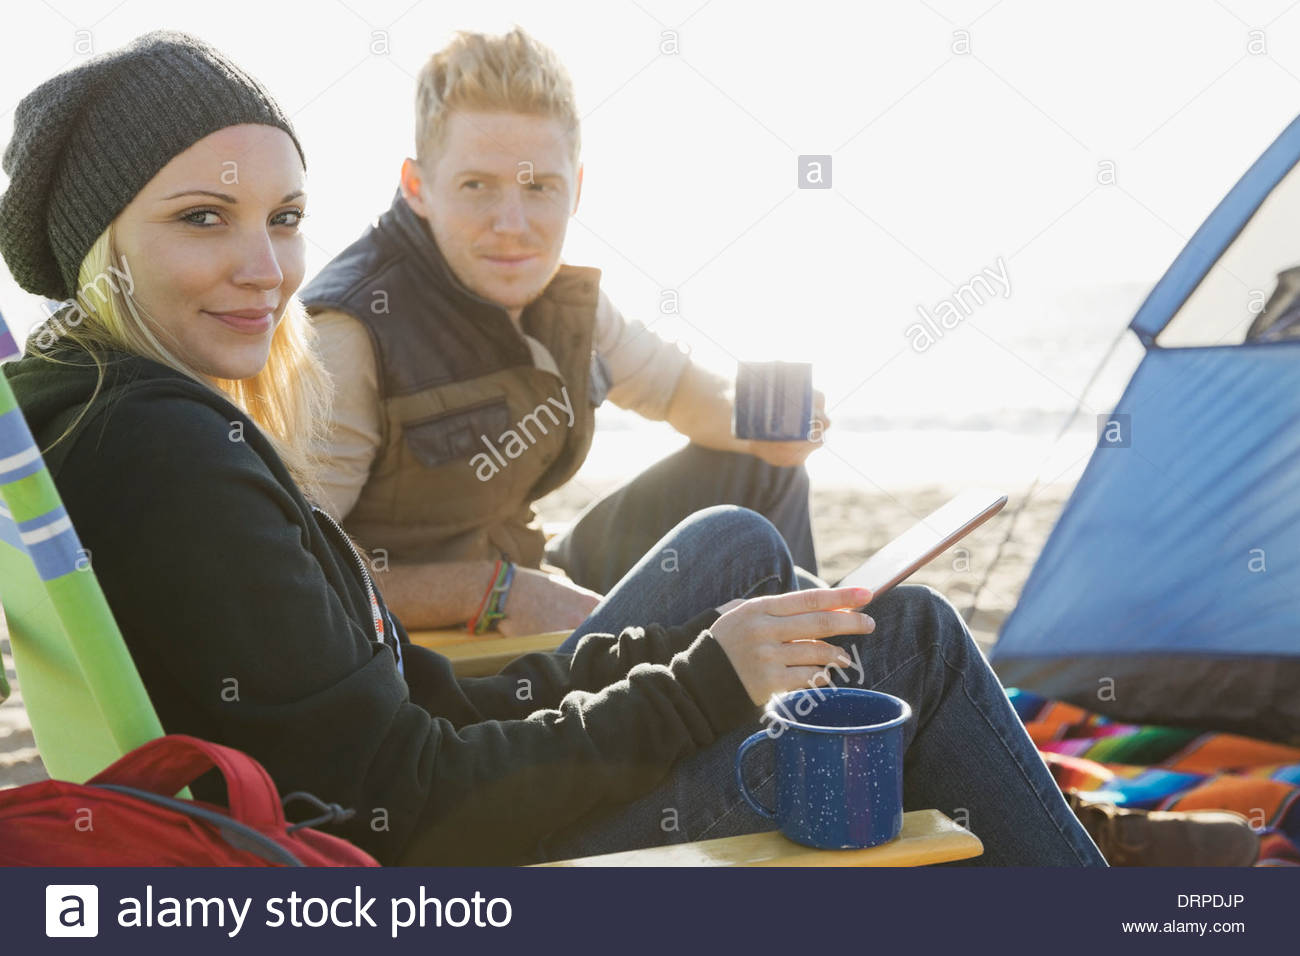 Couple camping on beach - Stock Image